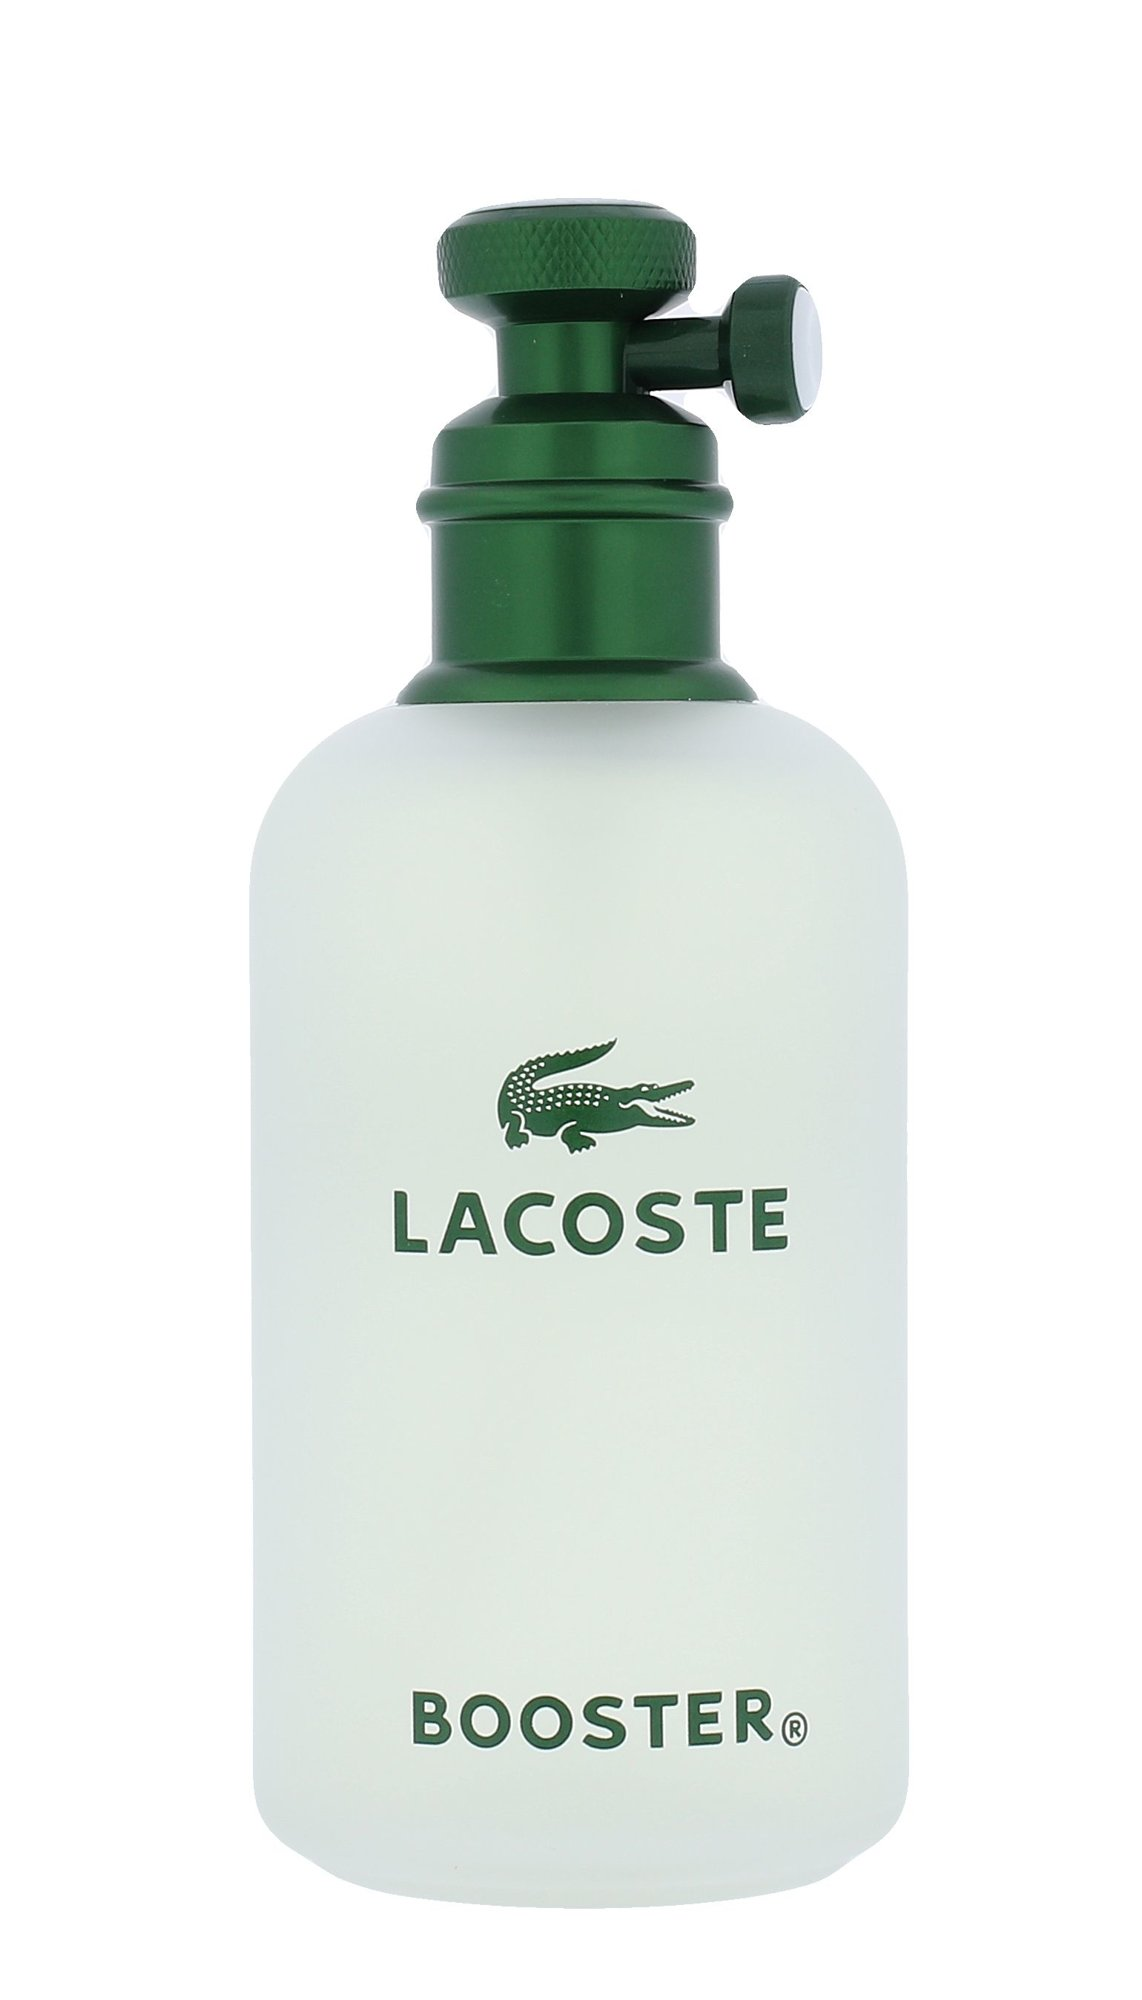 Lacoste Booster EDT 125ml